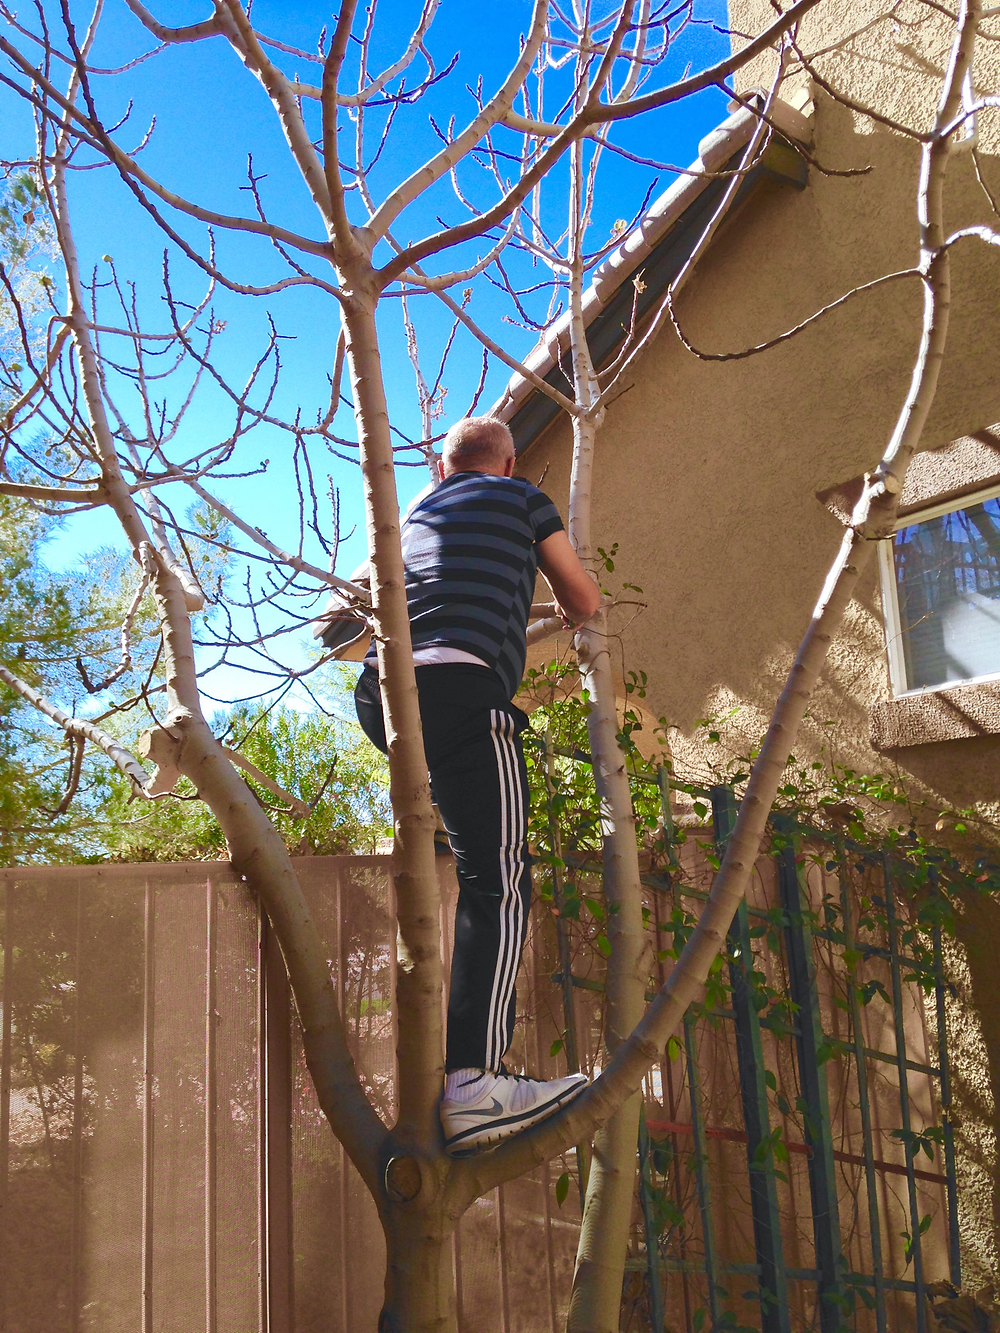 Our friend cutting down our fig tree